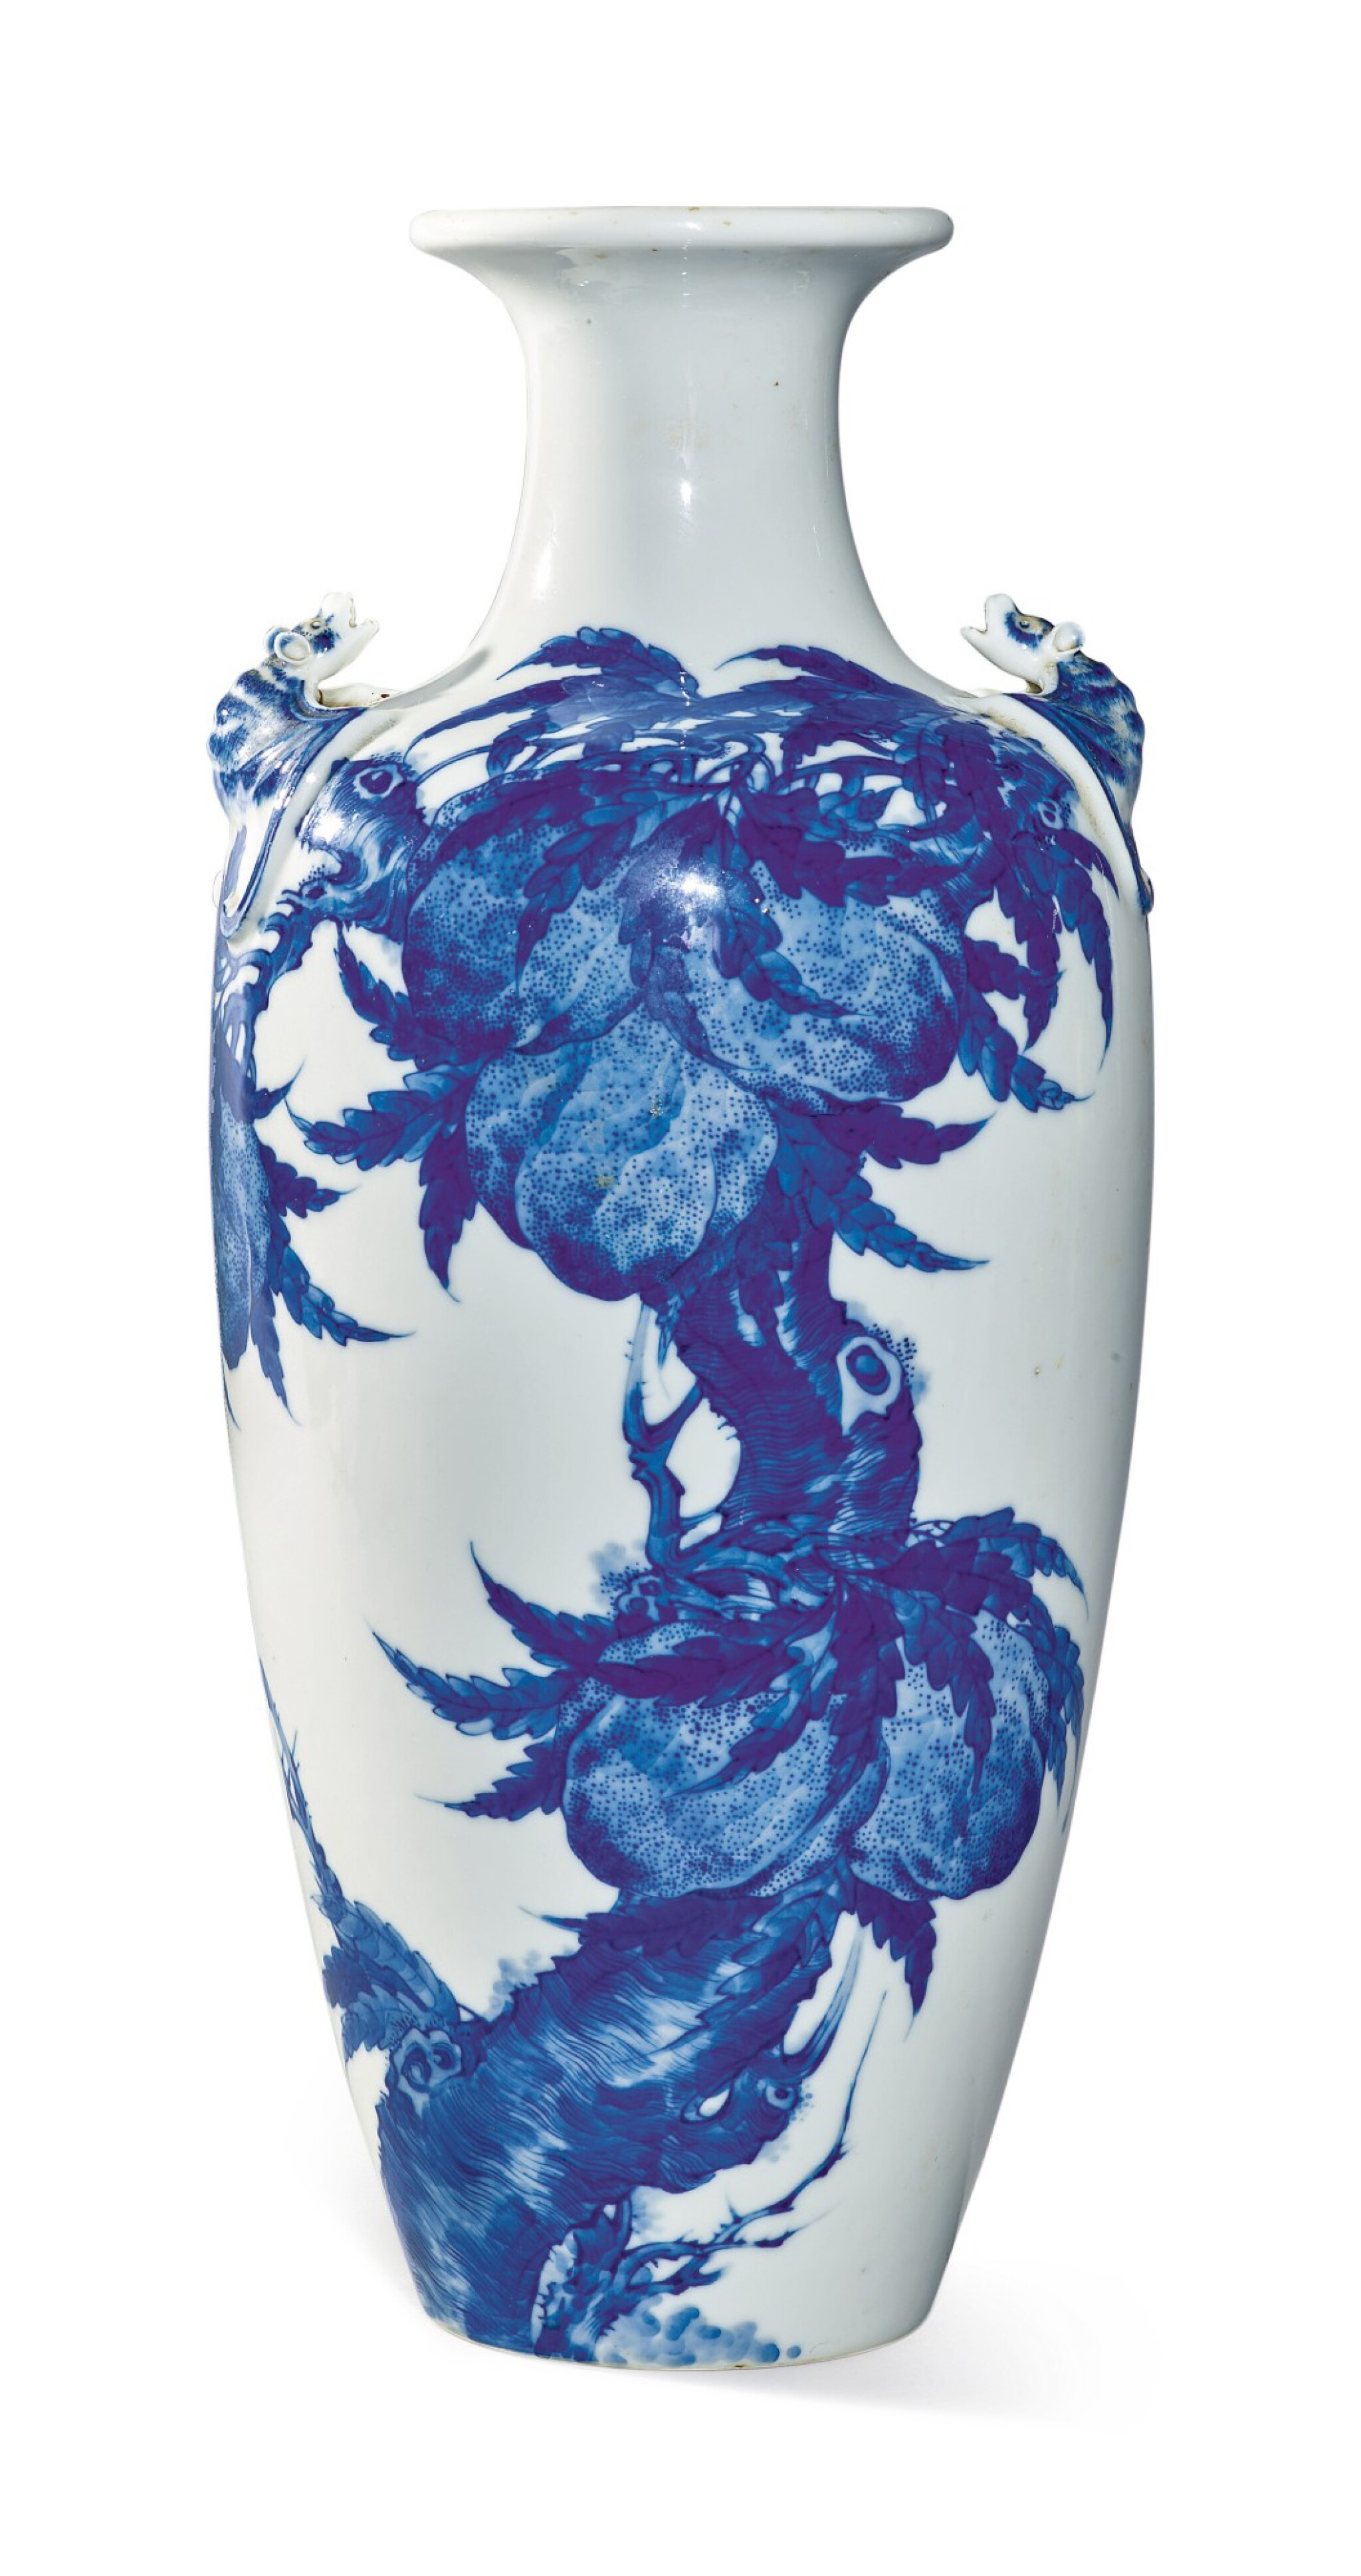 View full screen - View 1 of Lot 1139. A BLUE AND WHITE 'PEACH' VASE, 19TH / 20TH CENTURY.